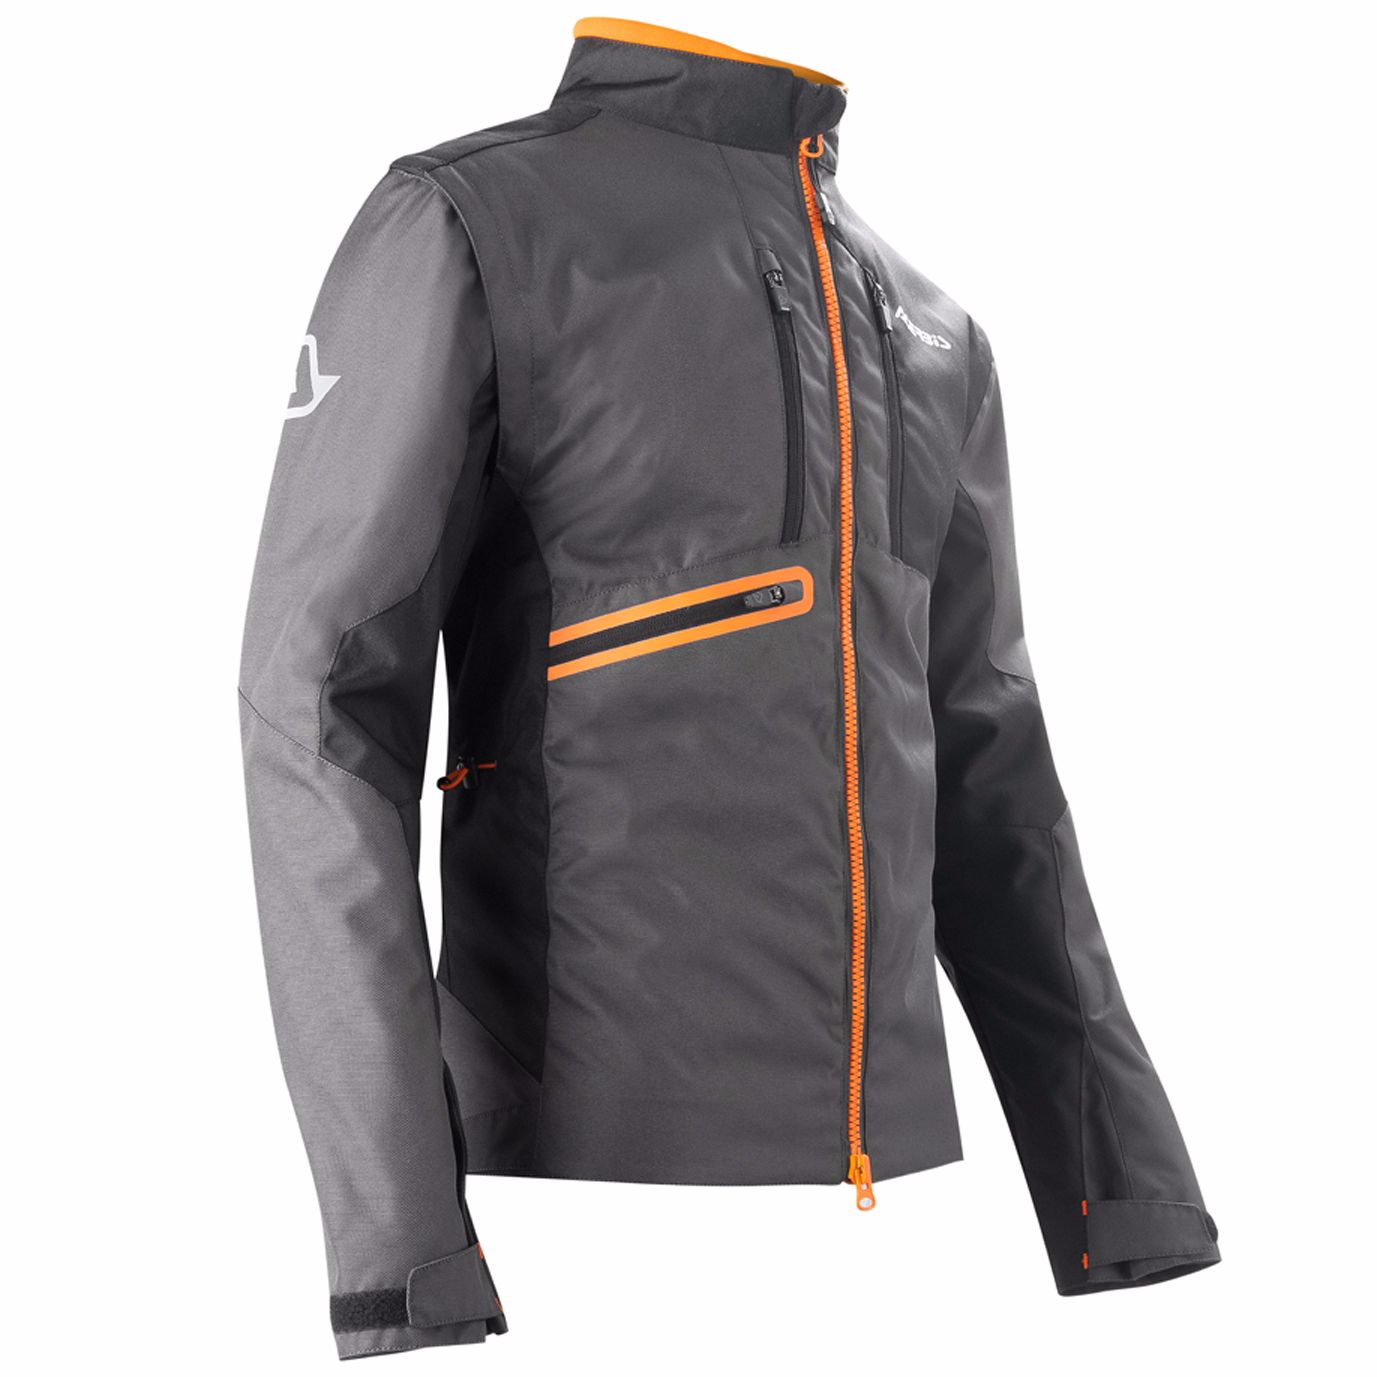 Veste enduro Acerbis ENDURO ONE BLACK FLUO ORANGE 2020